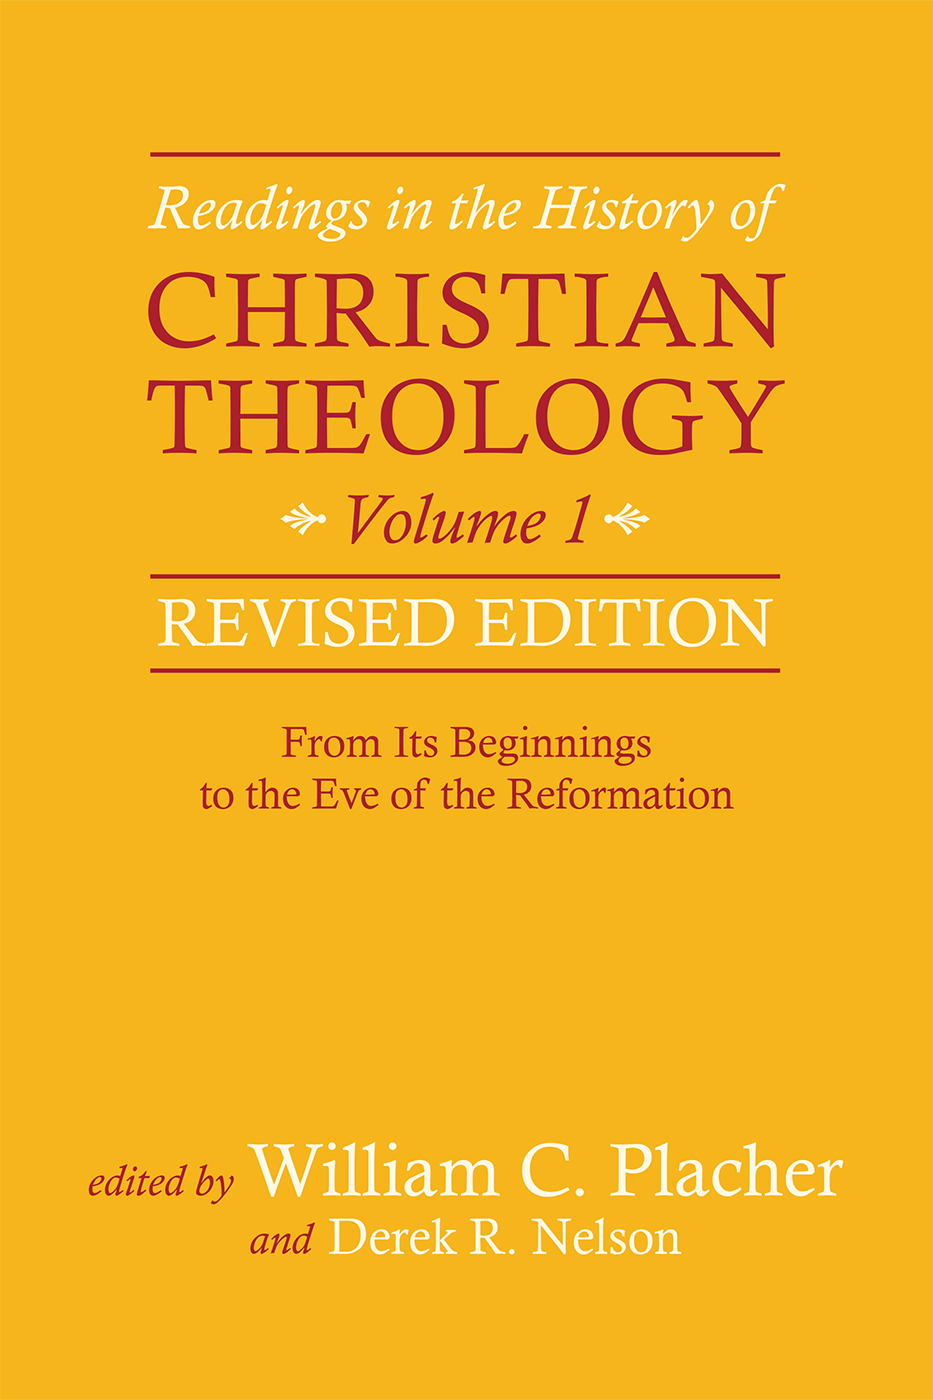 Readings in the History of Christian Theology, Volume 1, Revised Edition